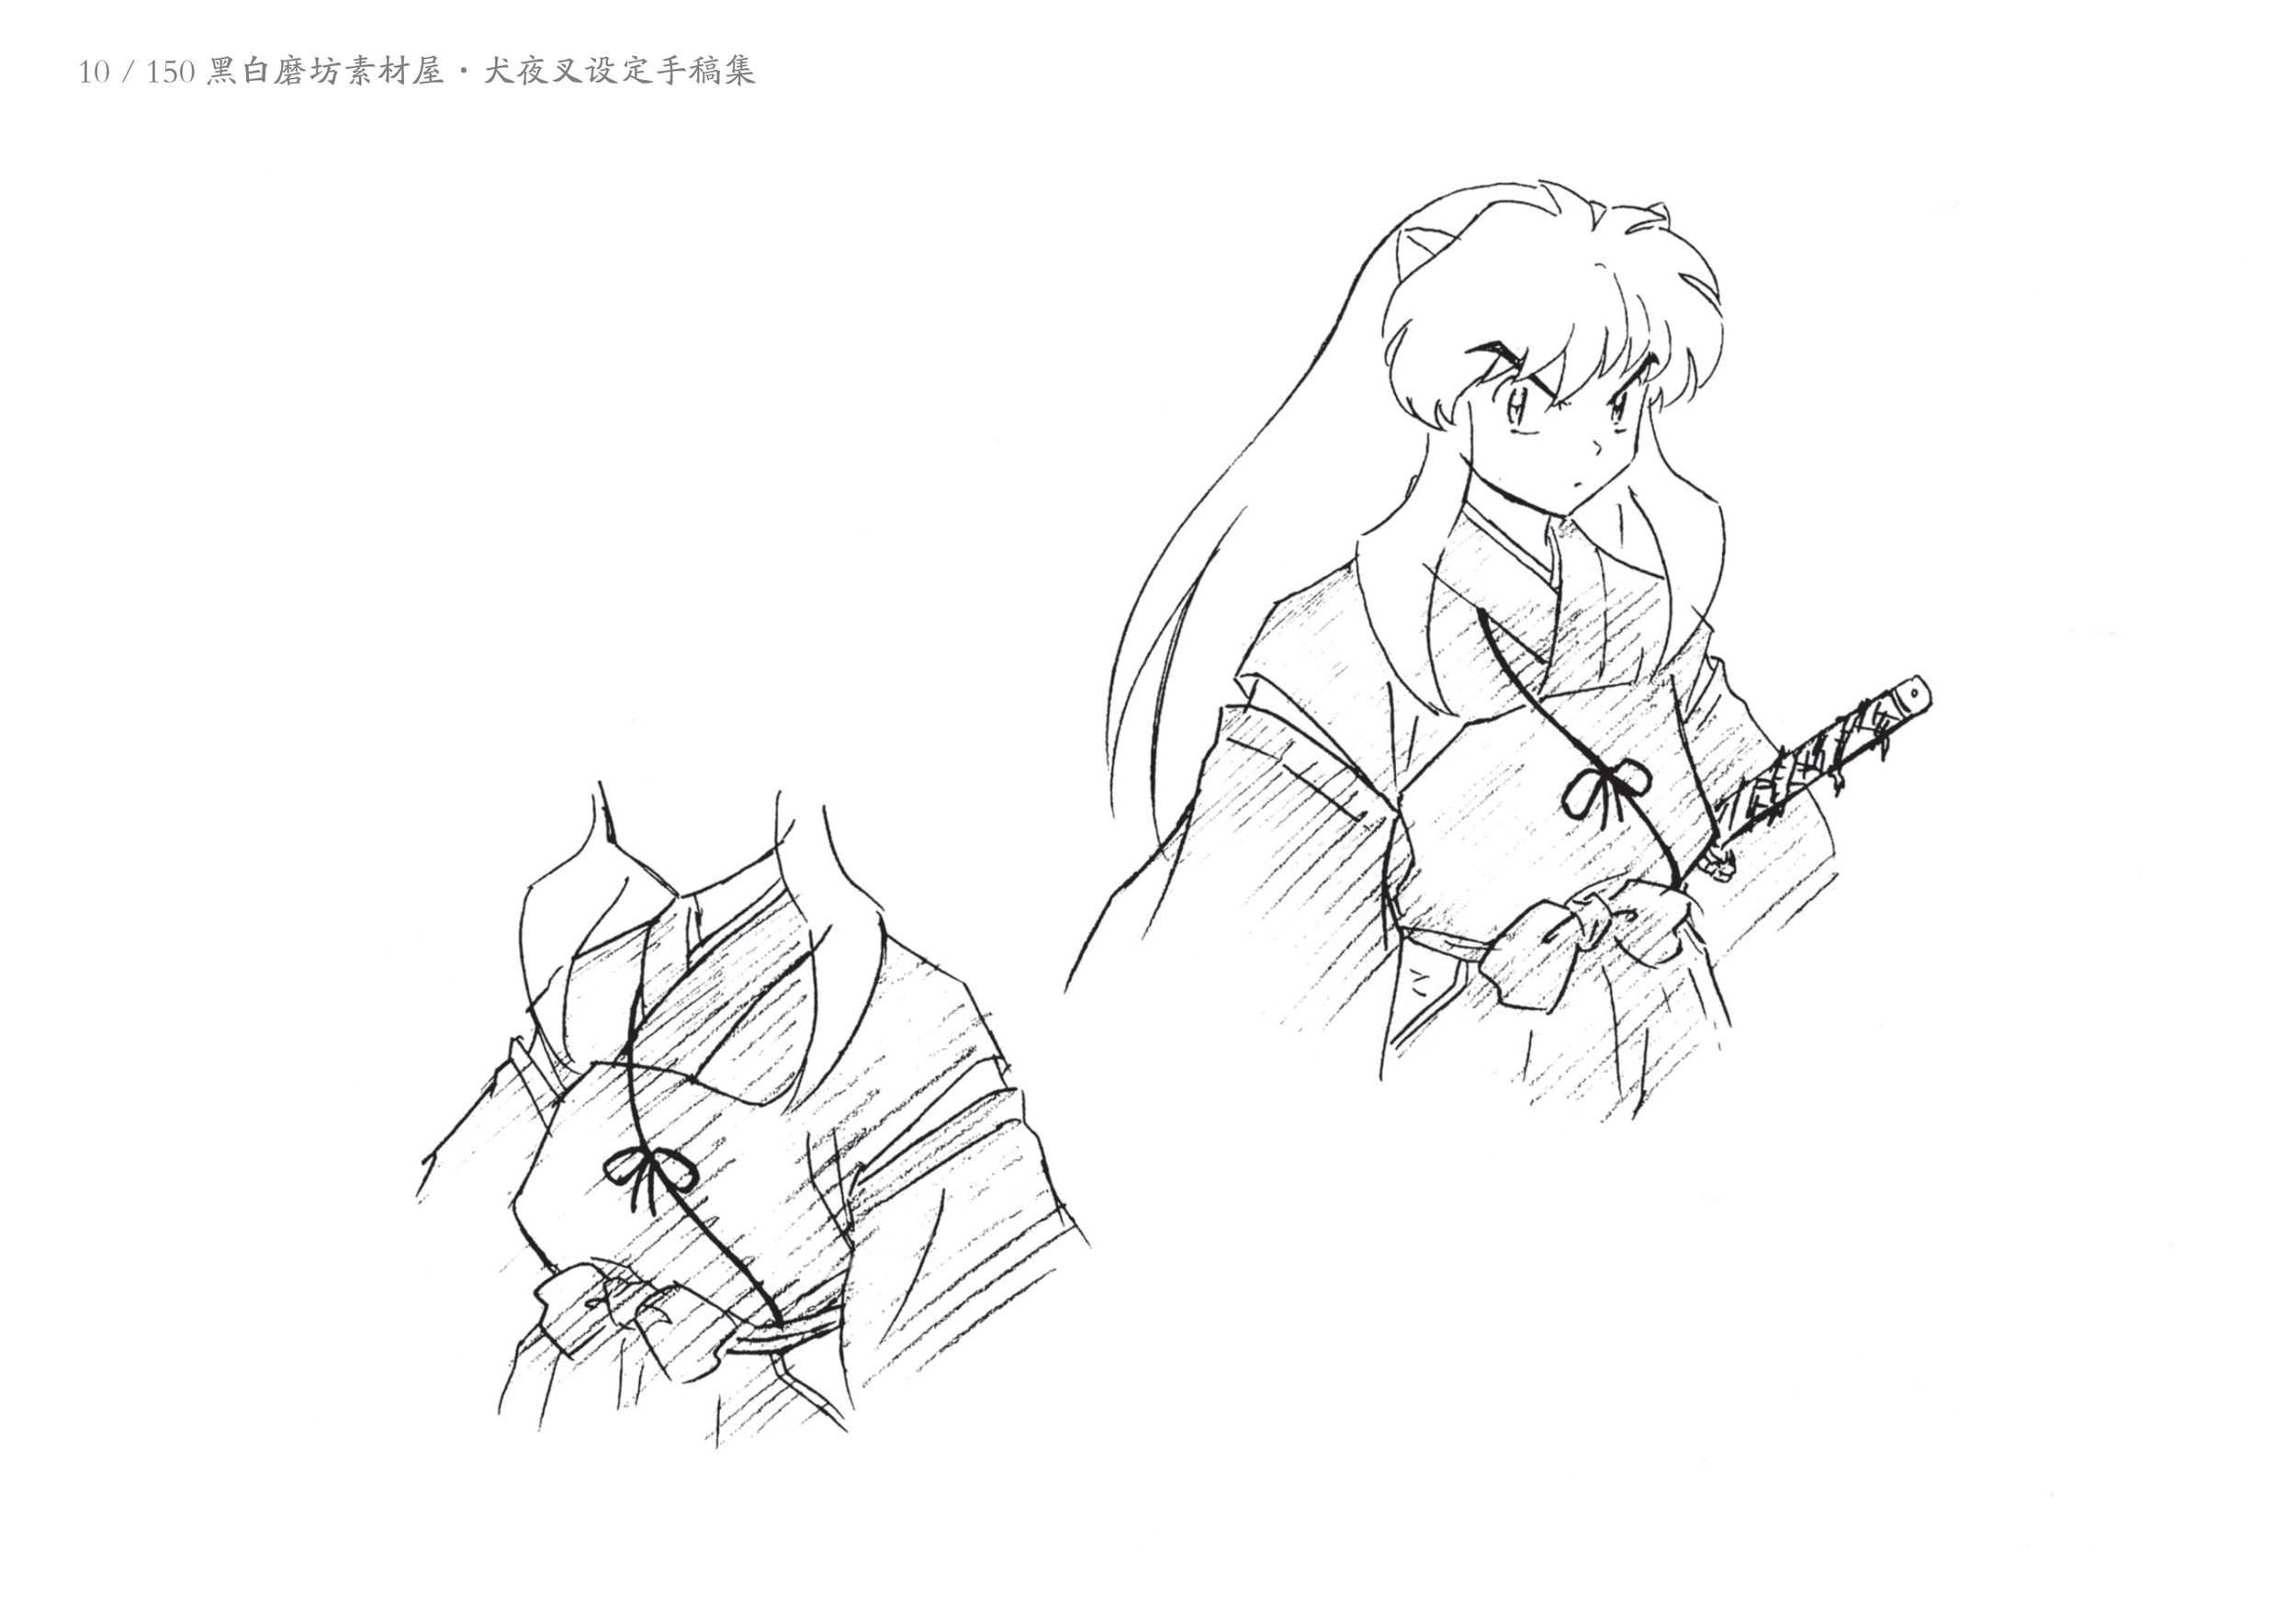 Art of the Inuyasha A - 10.jpg